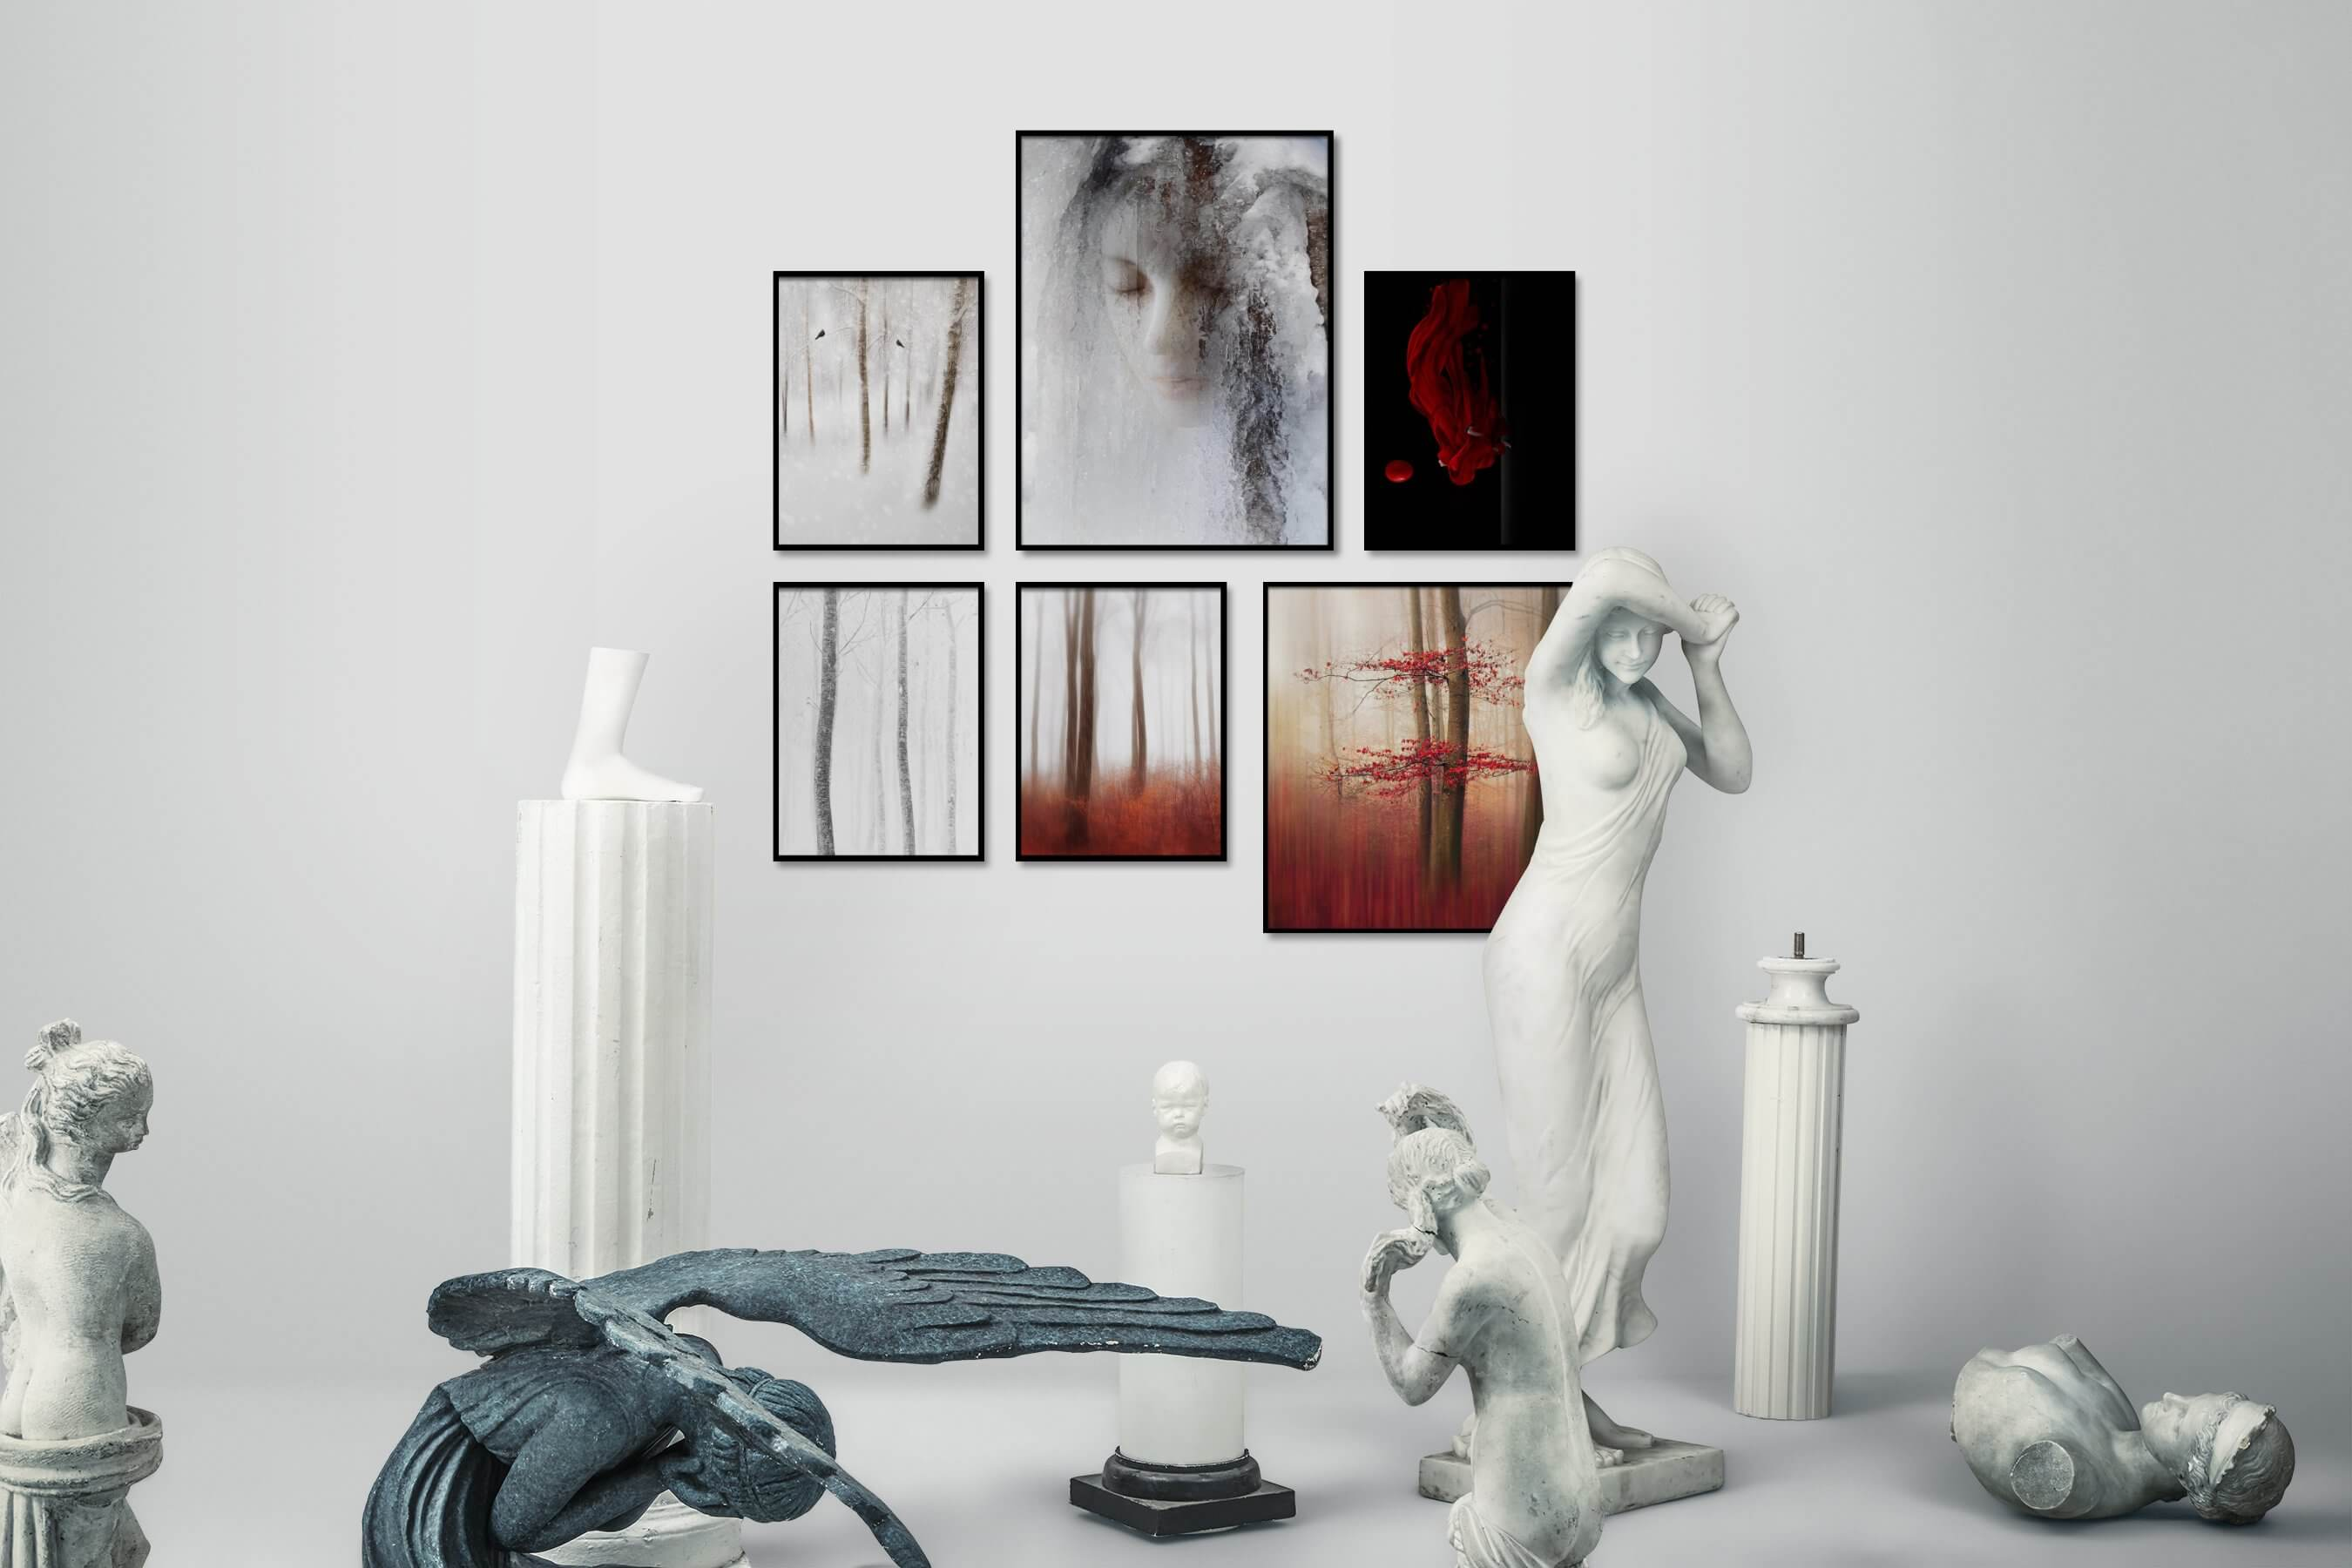 Gallery wall idea with six framed pictures arranged on a wall depicting For the Moderate, Nature, Artsy, Black & White, Bright Tones, and Dark Tones